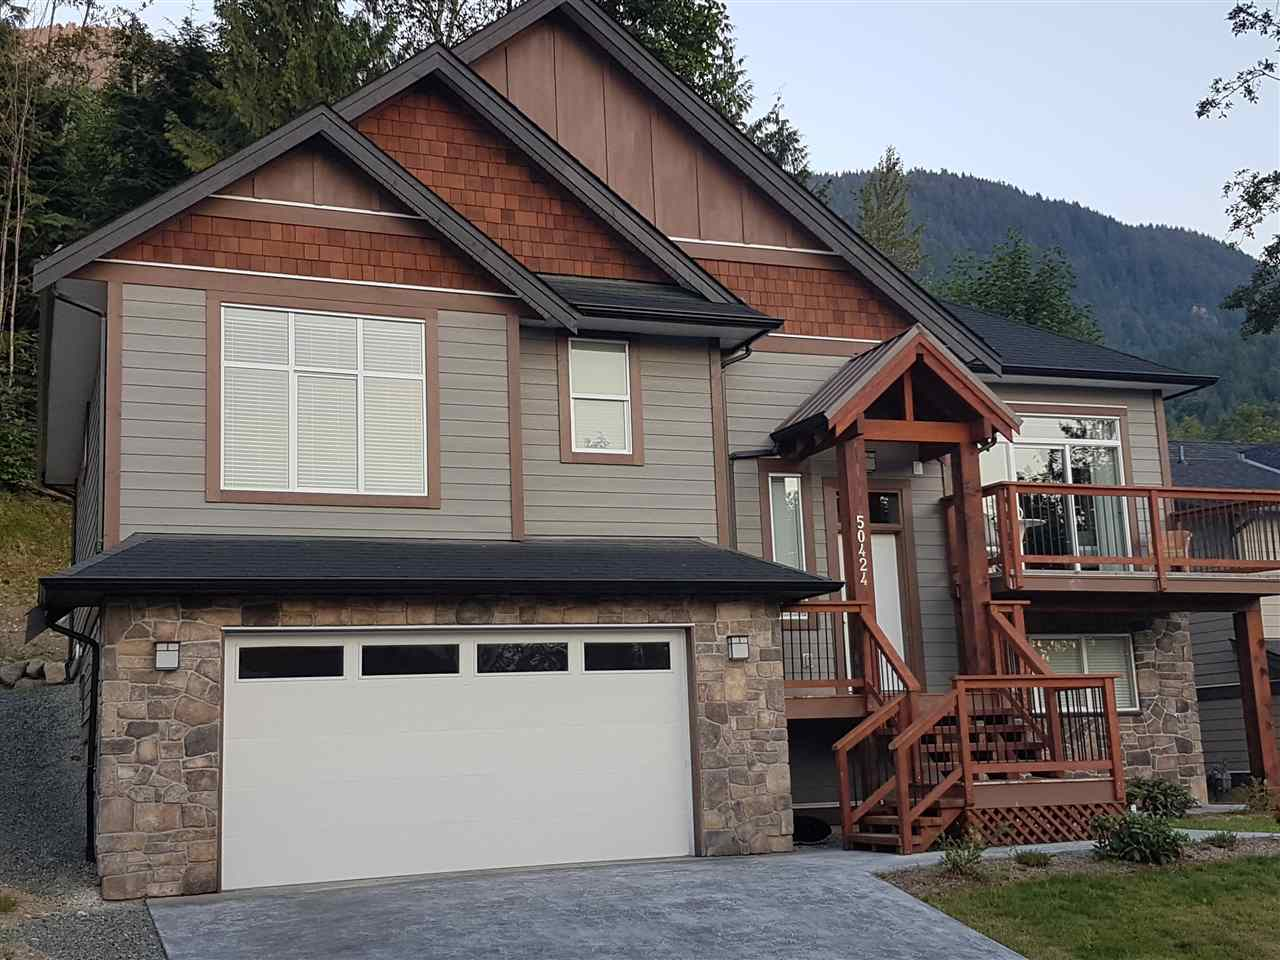 Gorgeous executive new 4 bedroom family home, nestled high in the east hillsides of Chilliwack. This high end build is fully finished and beautifully designed, with open plan, designers gourmet kitchen, bakers size quartz island and counter tops. Quality stainless steel appliances, as well as W/D. Great for entertaining with spacious great room, featured cultured stone fireplace, abundant natural light with the large windows and sliding doors, featuring spacious balcony off the living room. Large bedrooms throughout, 9 ft ceilings, master incl. views to the west , 5 pce ensuite, double sinks, quartz counter tops, custom walk-in closet, built in sprinklers (lower insurance) and nice open concept. Lower level has  inlaw accommodation.